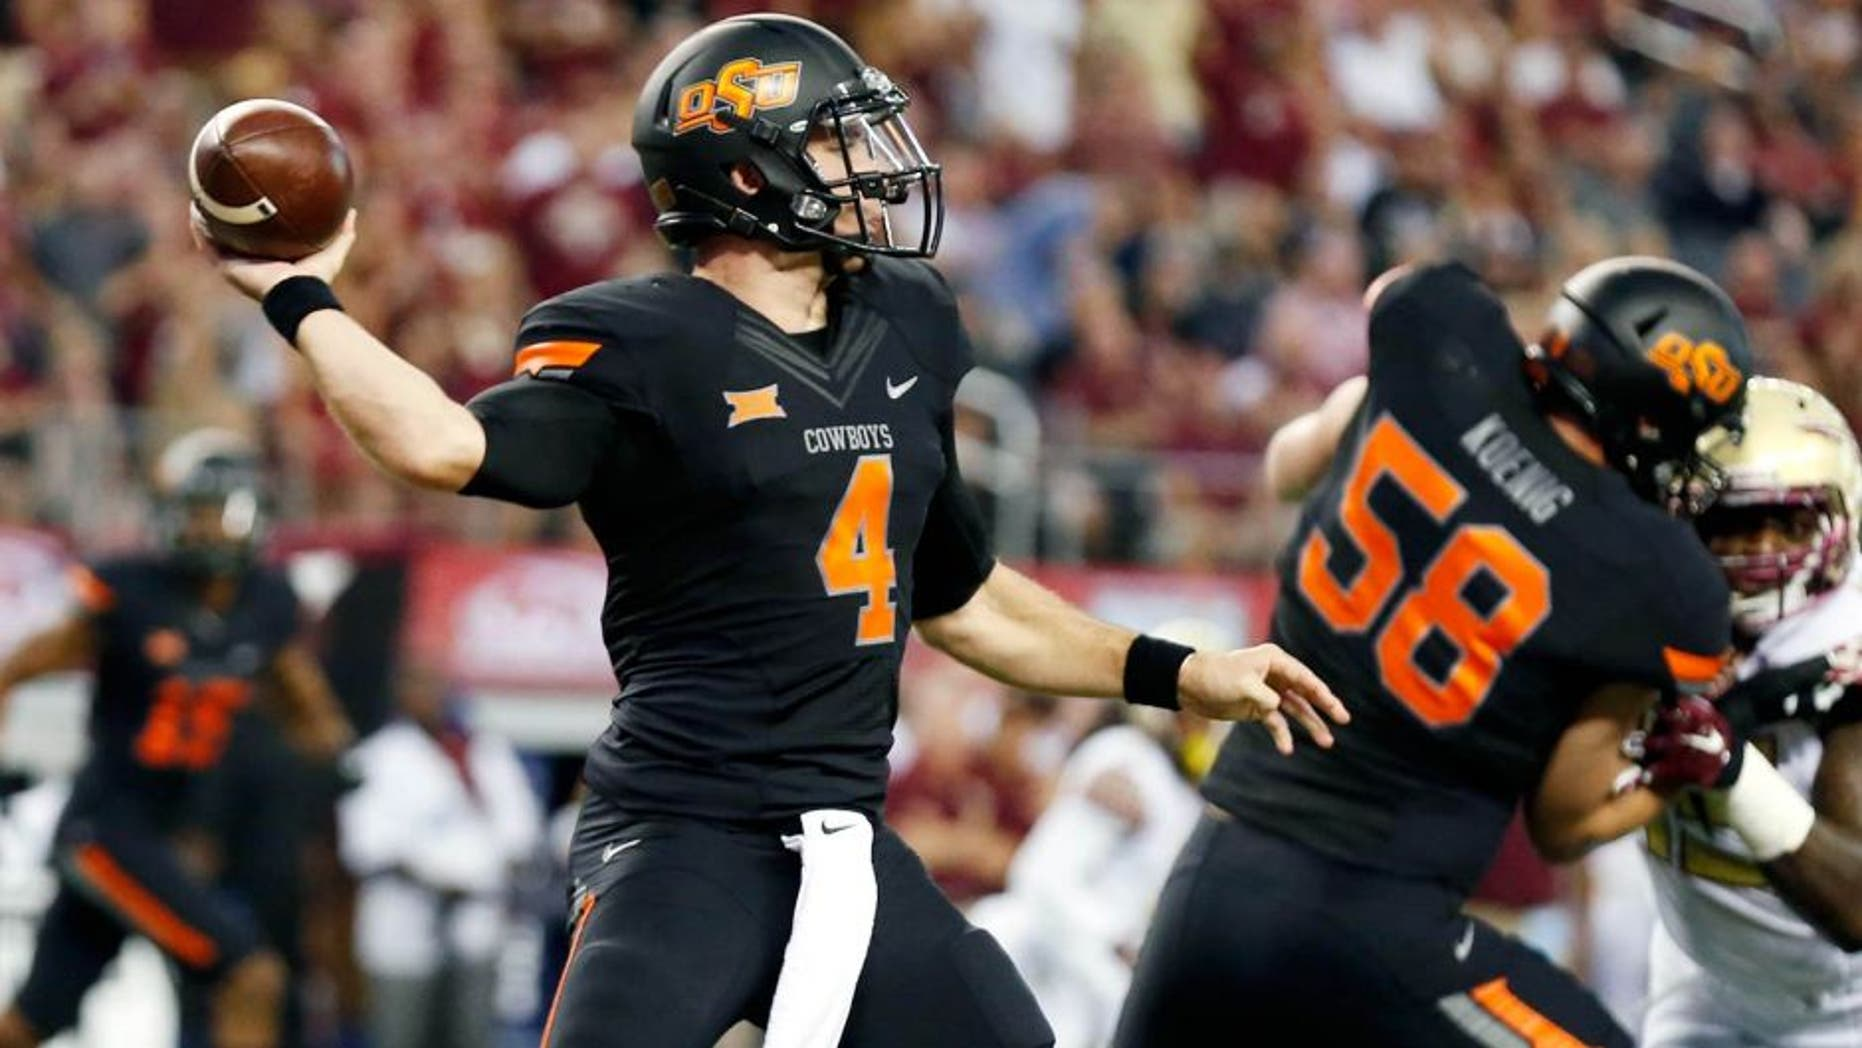 Aug 30, 2014; Arlington, TX, USA; Oklahoma State Cowboys quarterback J.W. Walsh (4) throws against the Florida State Seminoles during the first quarter at AT&T Stadium. Mandatory Credit: Matthew Emmons-USA TODAY Sports